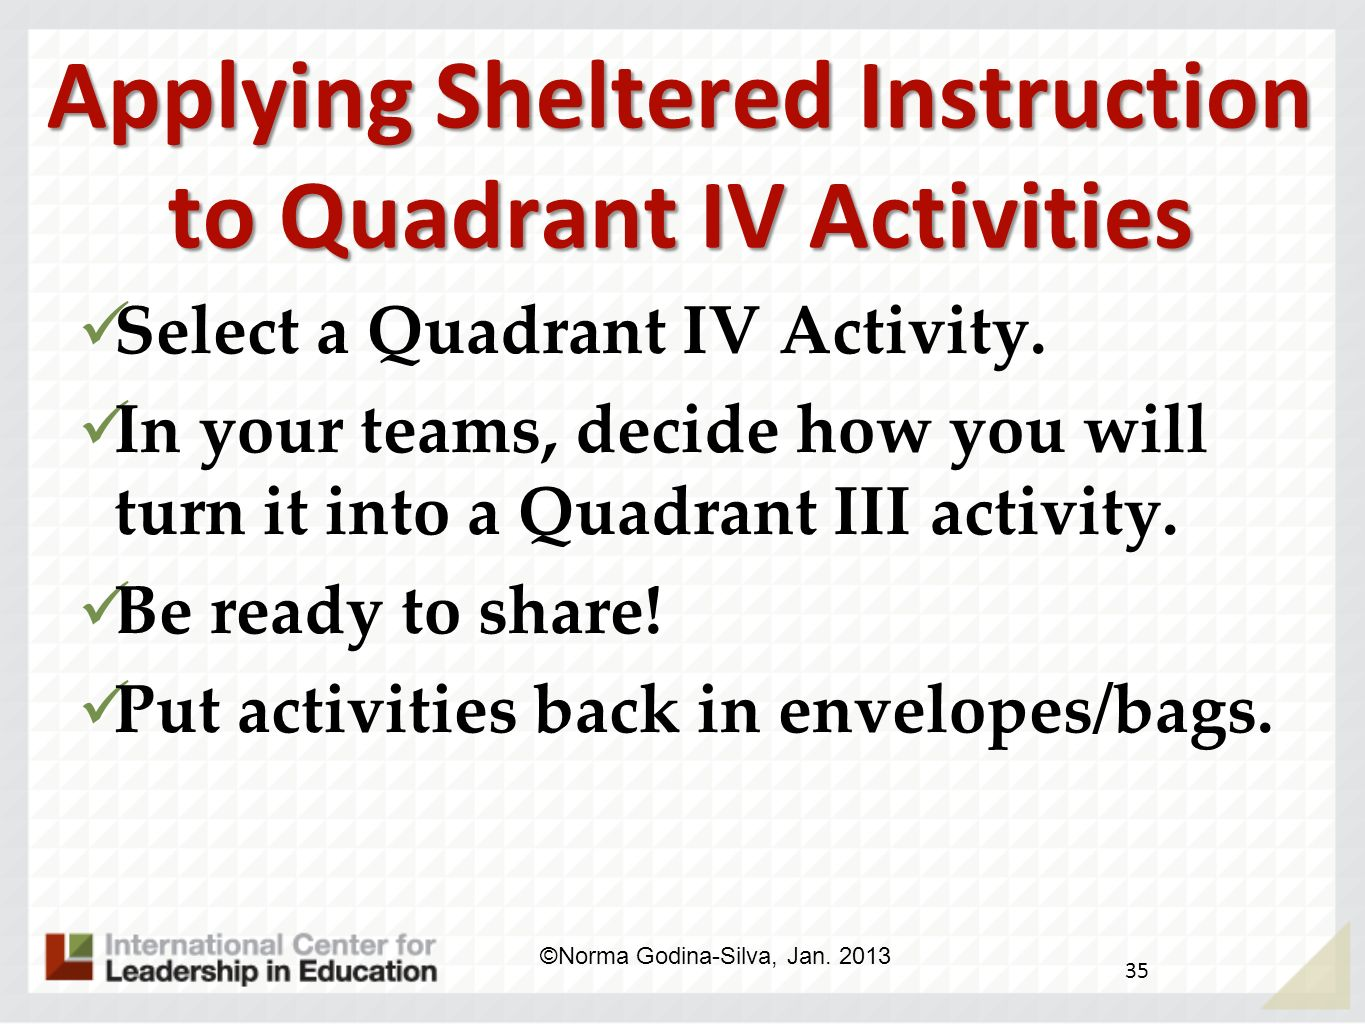 Applying Sheltered Instruction to Quadrant IV Activities